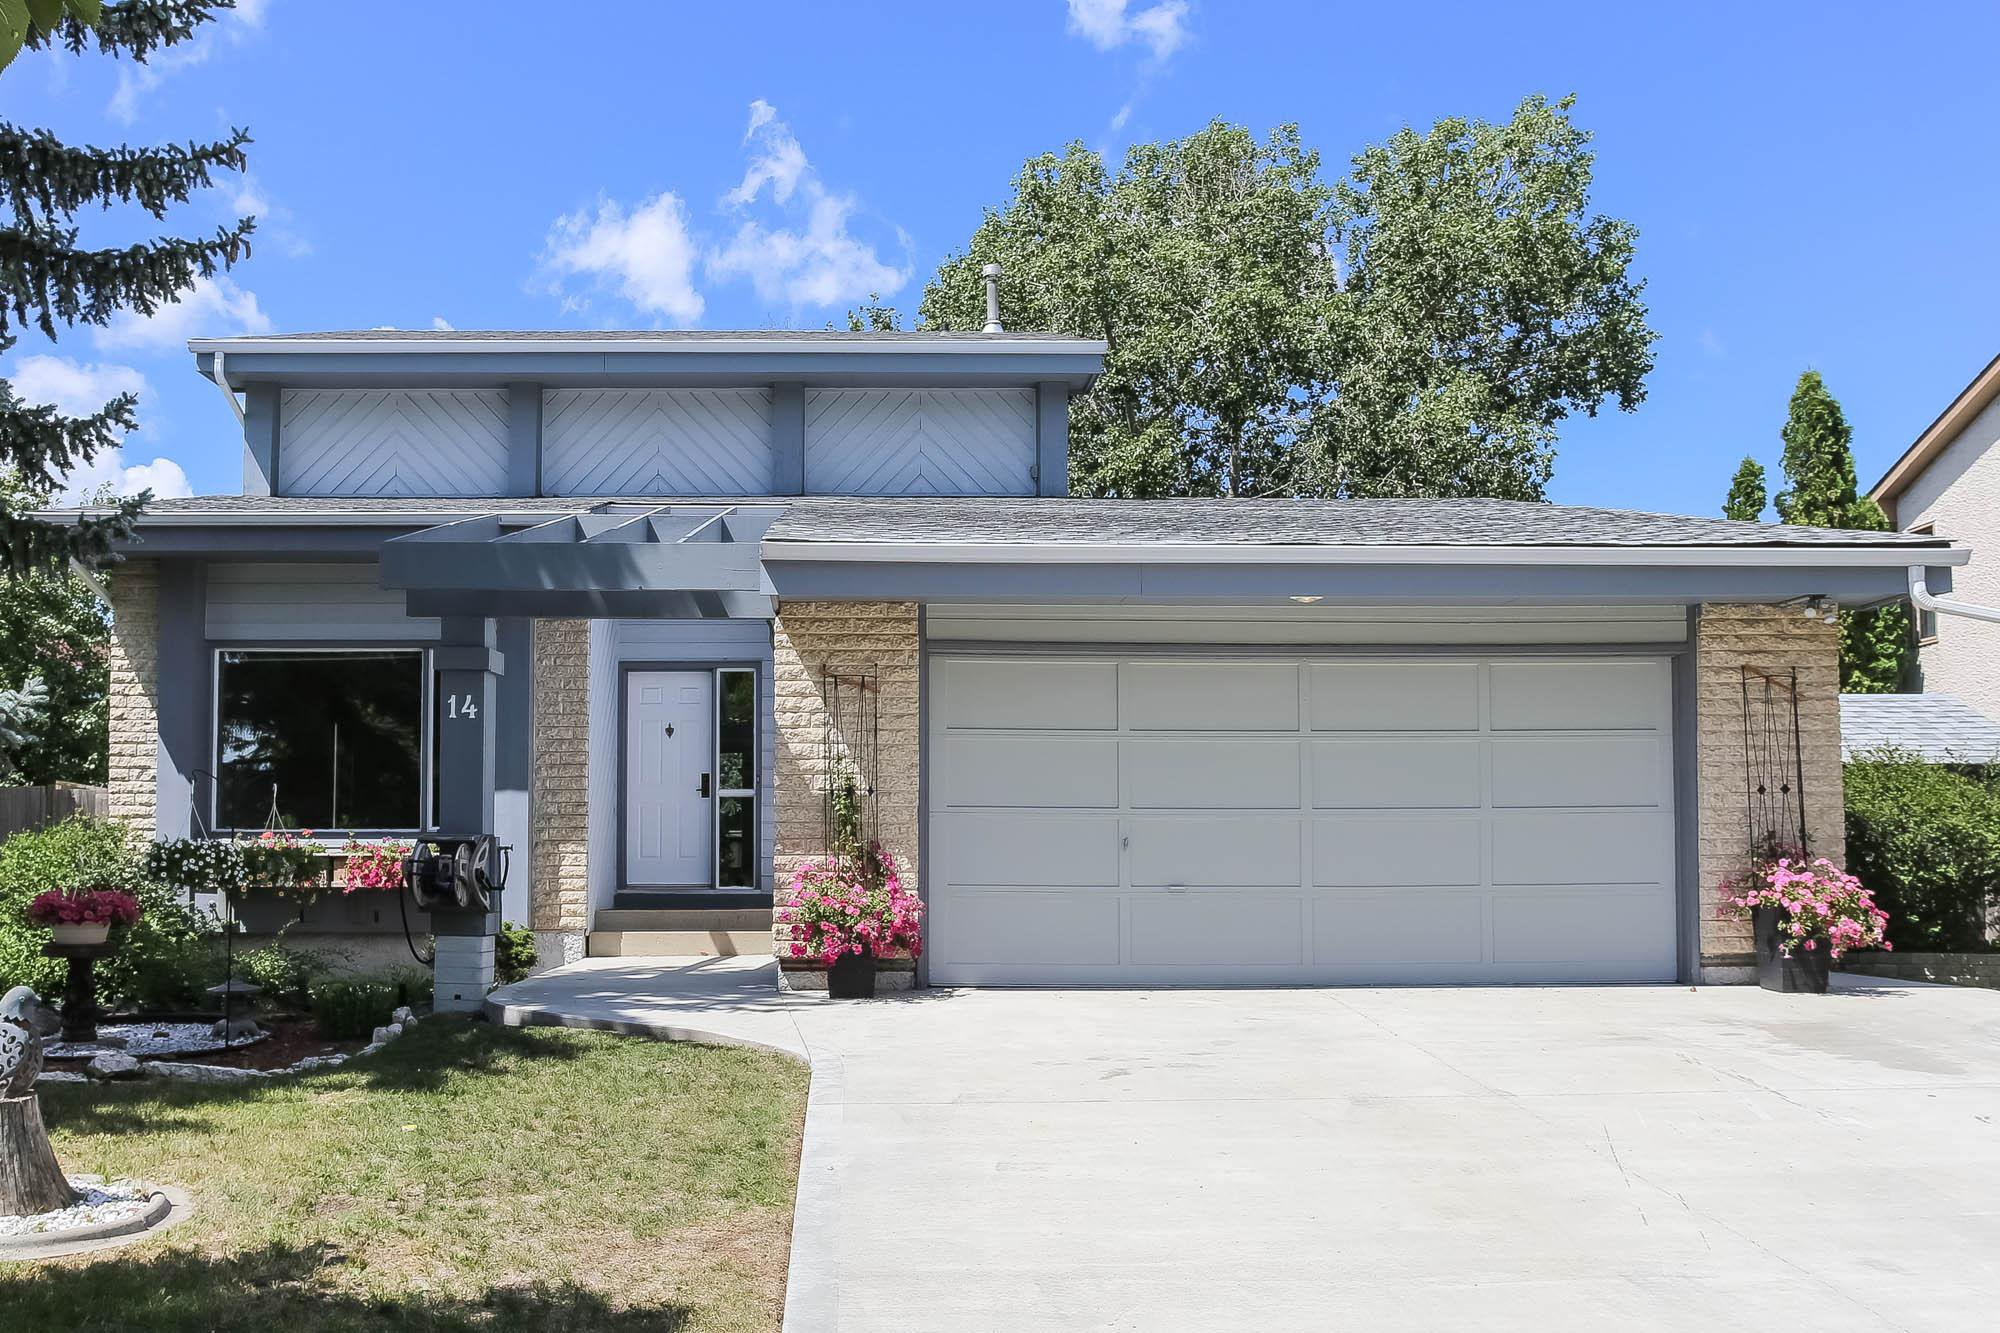 Photo 1: Photos: 14 Torrington Road in Winnipeg: Whyte Ridge Single Family Detached for sale (1P)  : MLS®# 202017383